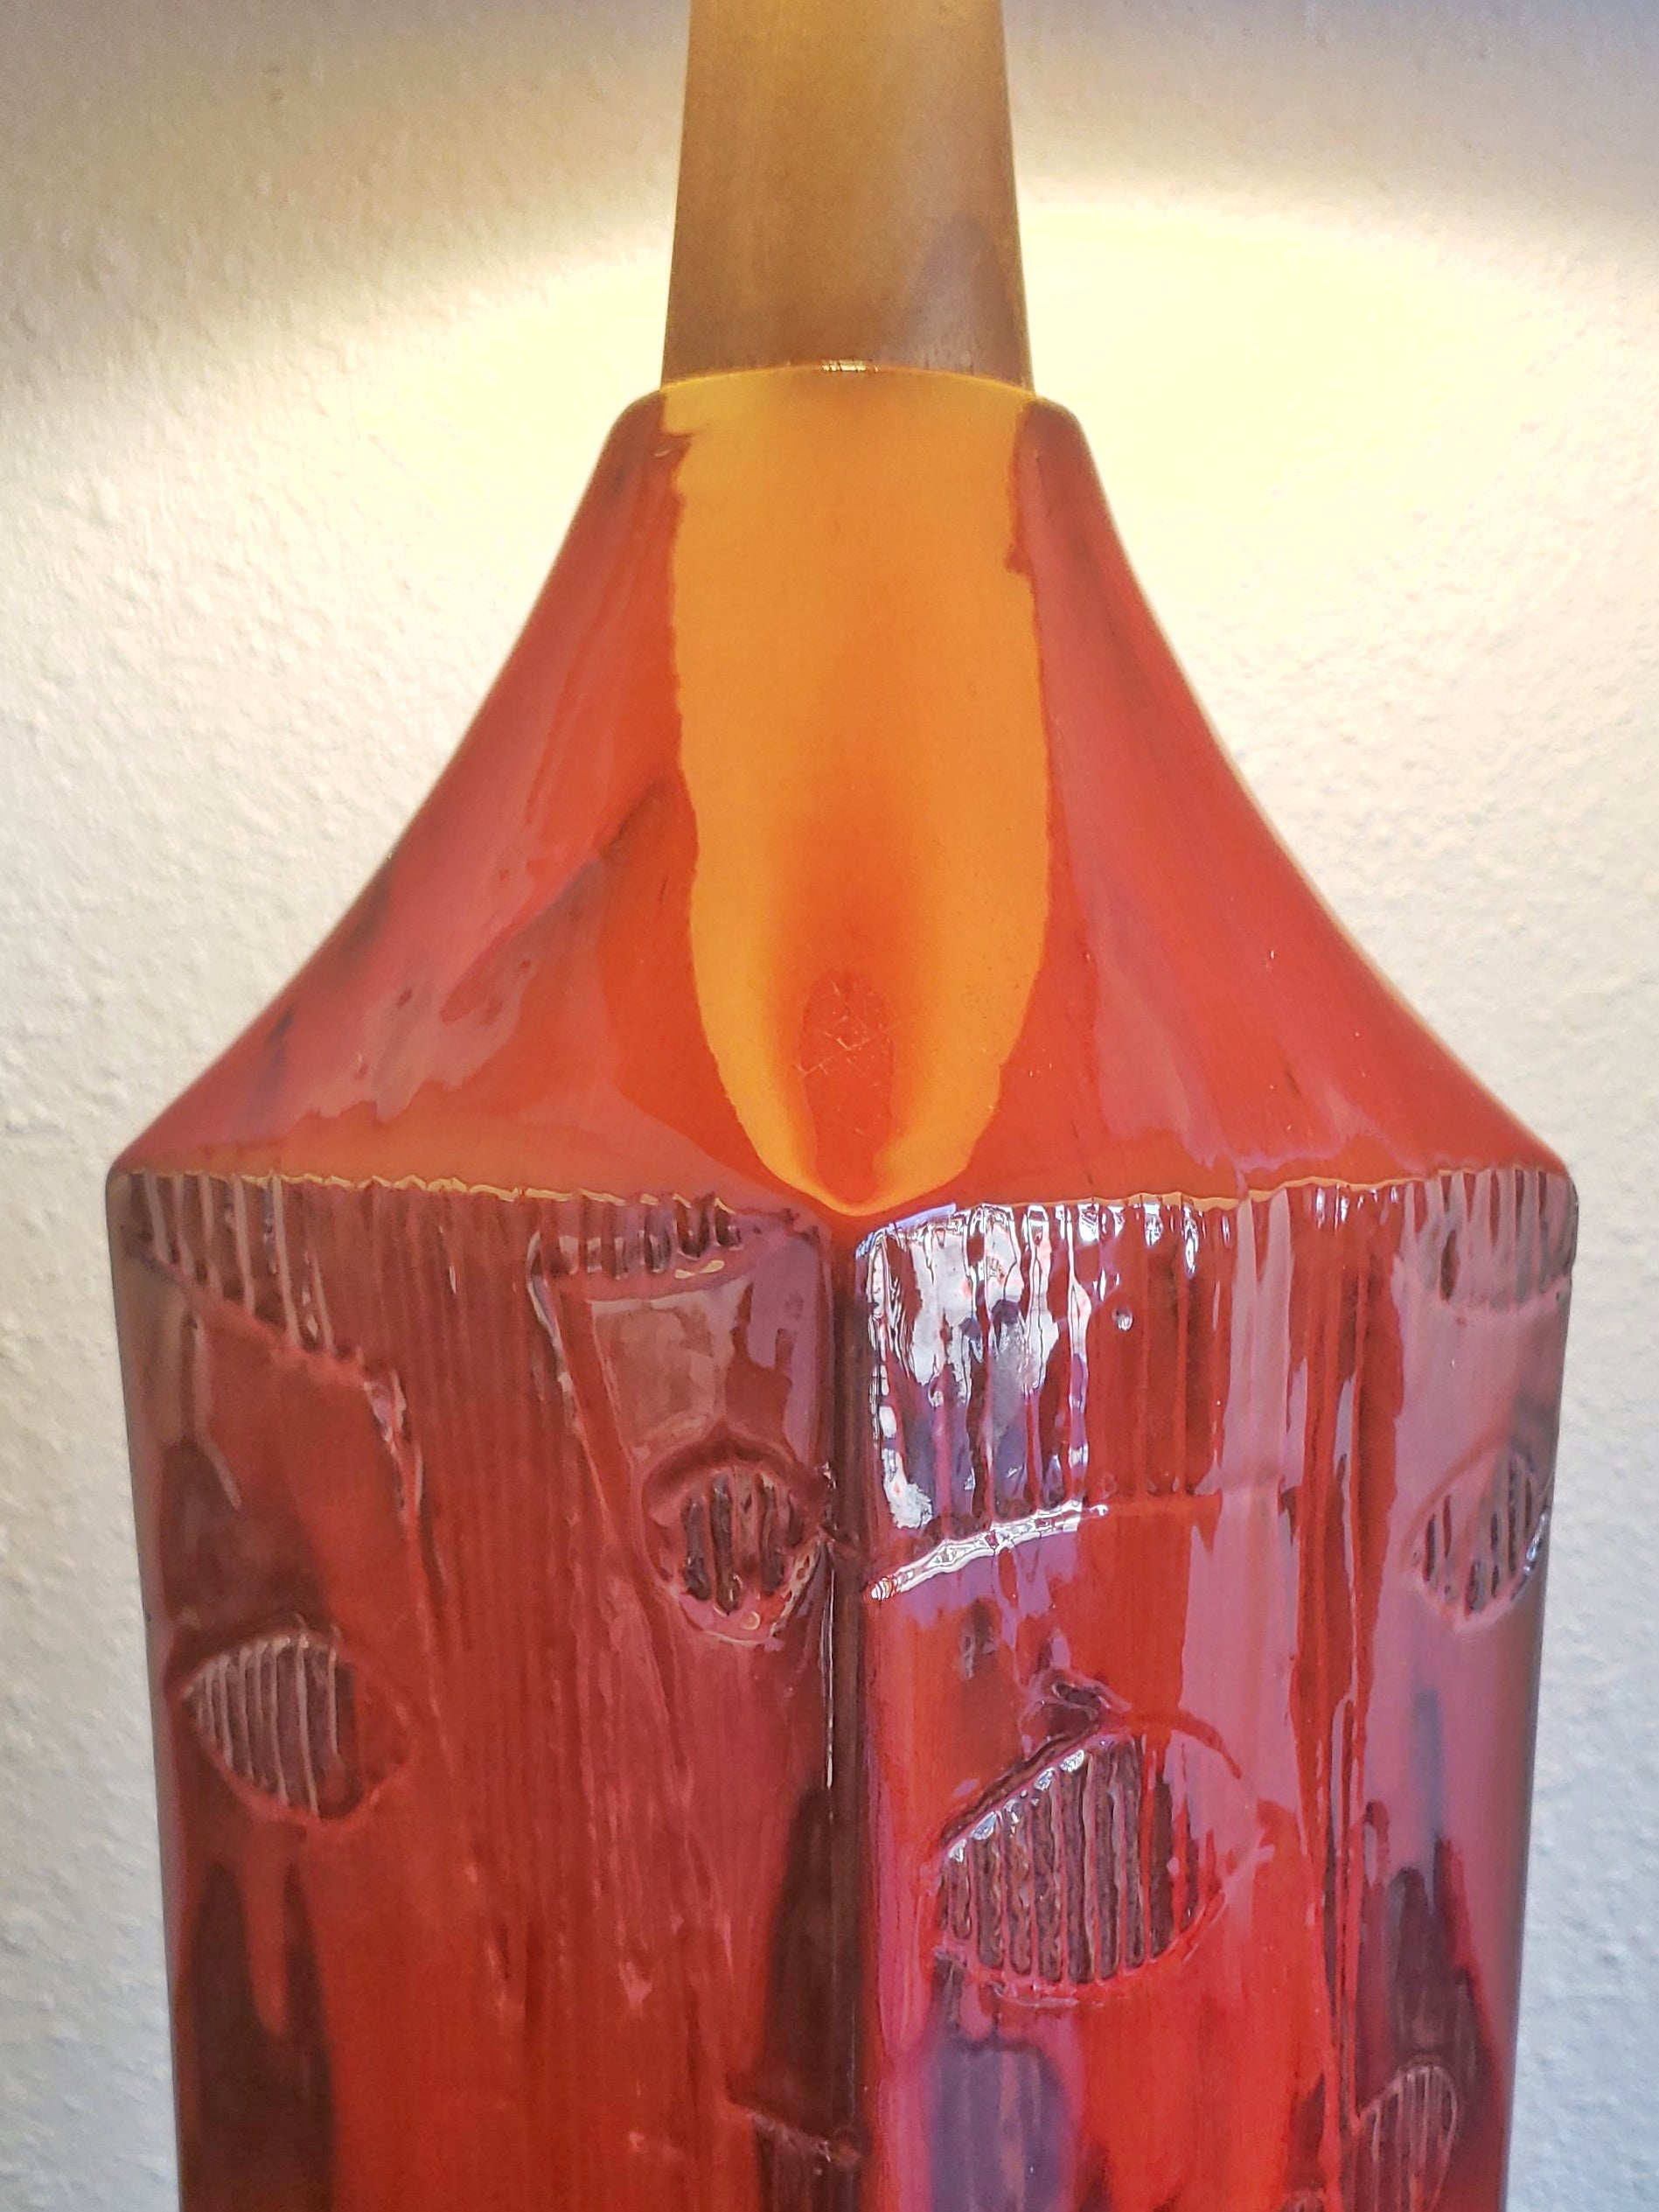 CANADIAN STUDIO POTTERY TABLE LAMP - UNSIGNED